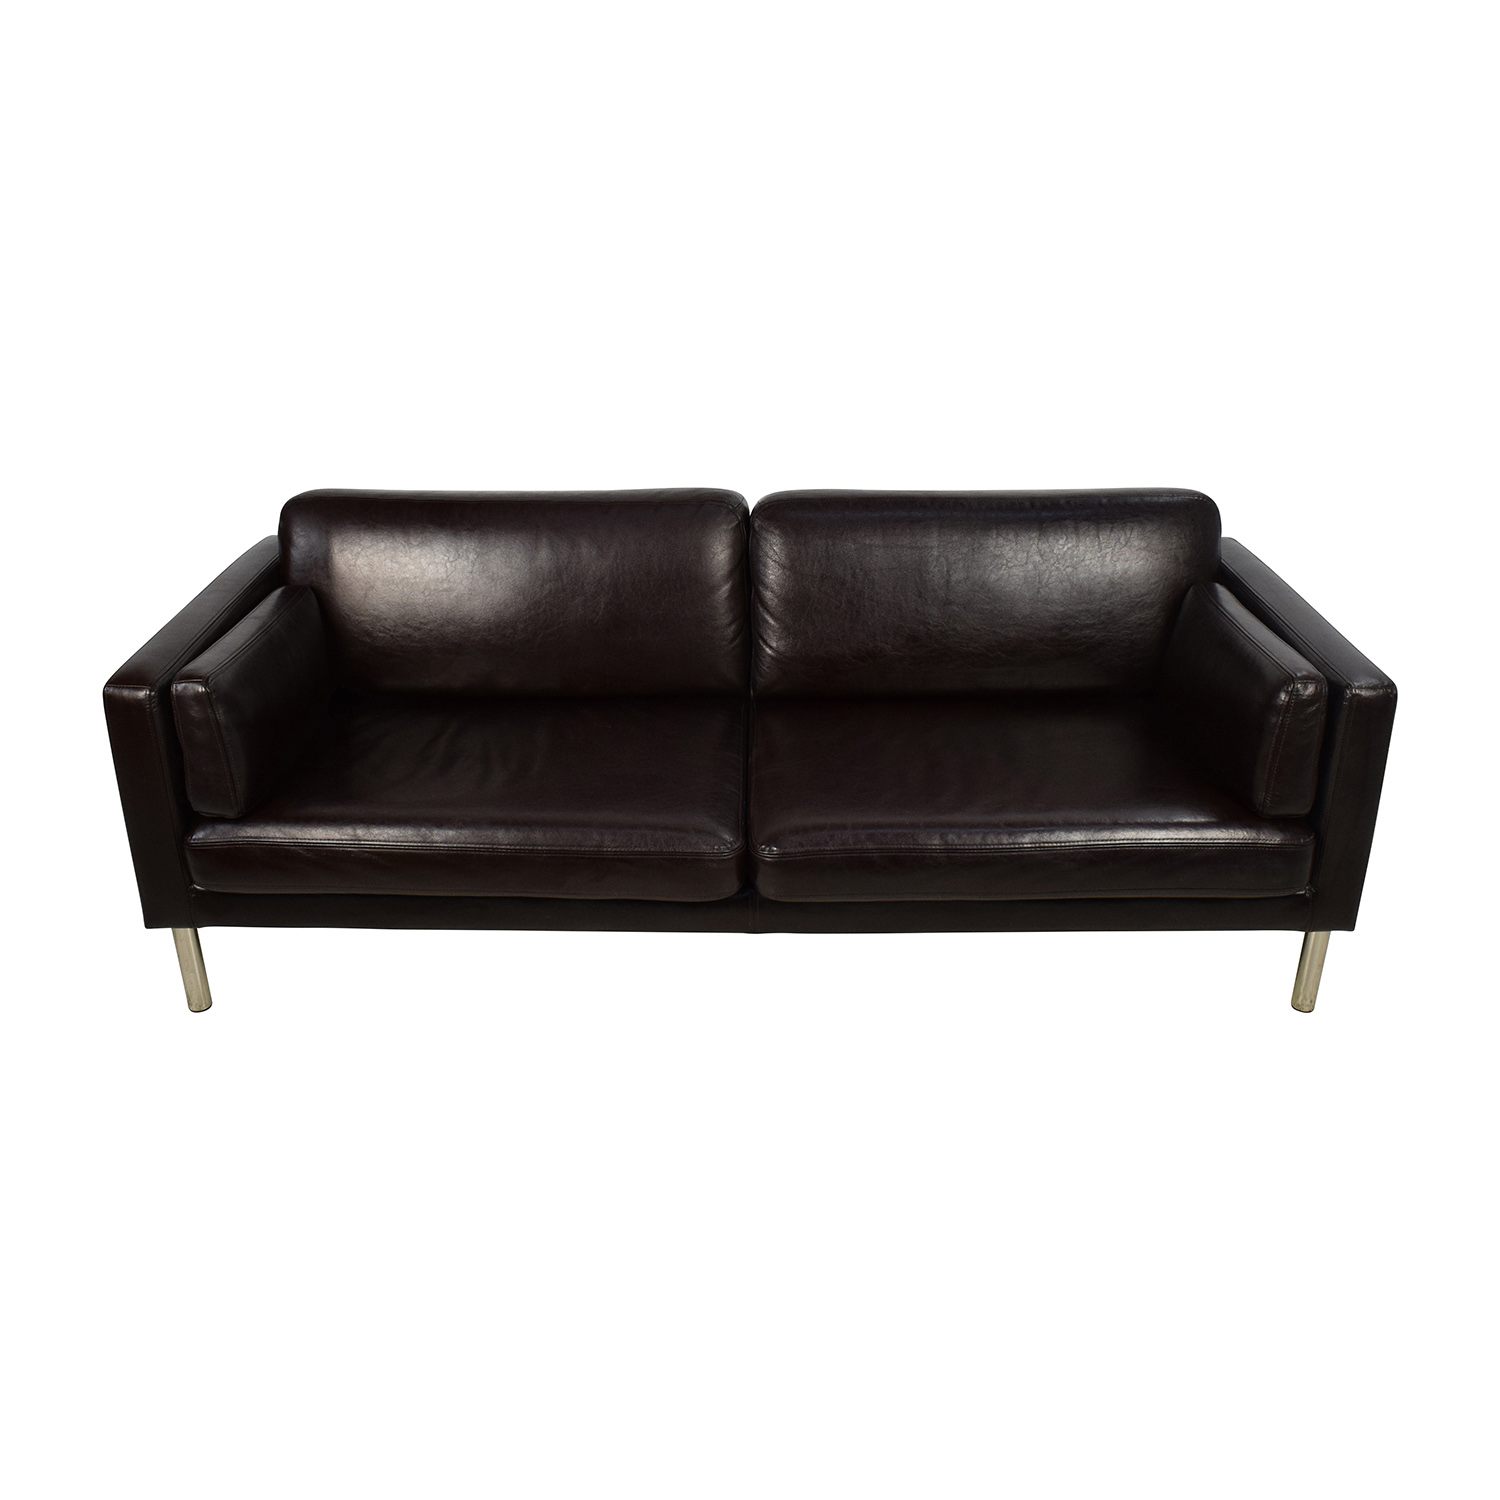 76 Off Brown Leather Sofa With Chrome Legs Sofas